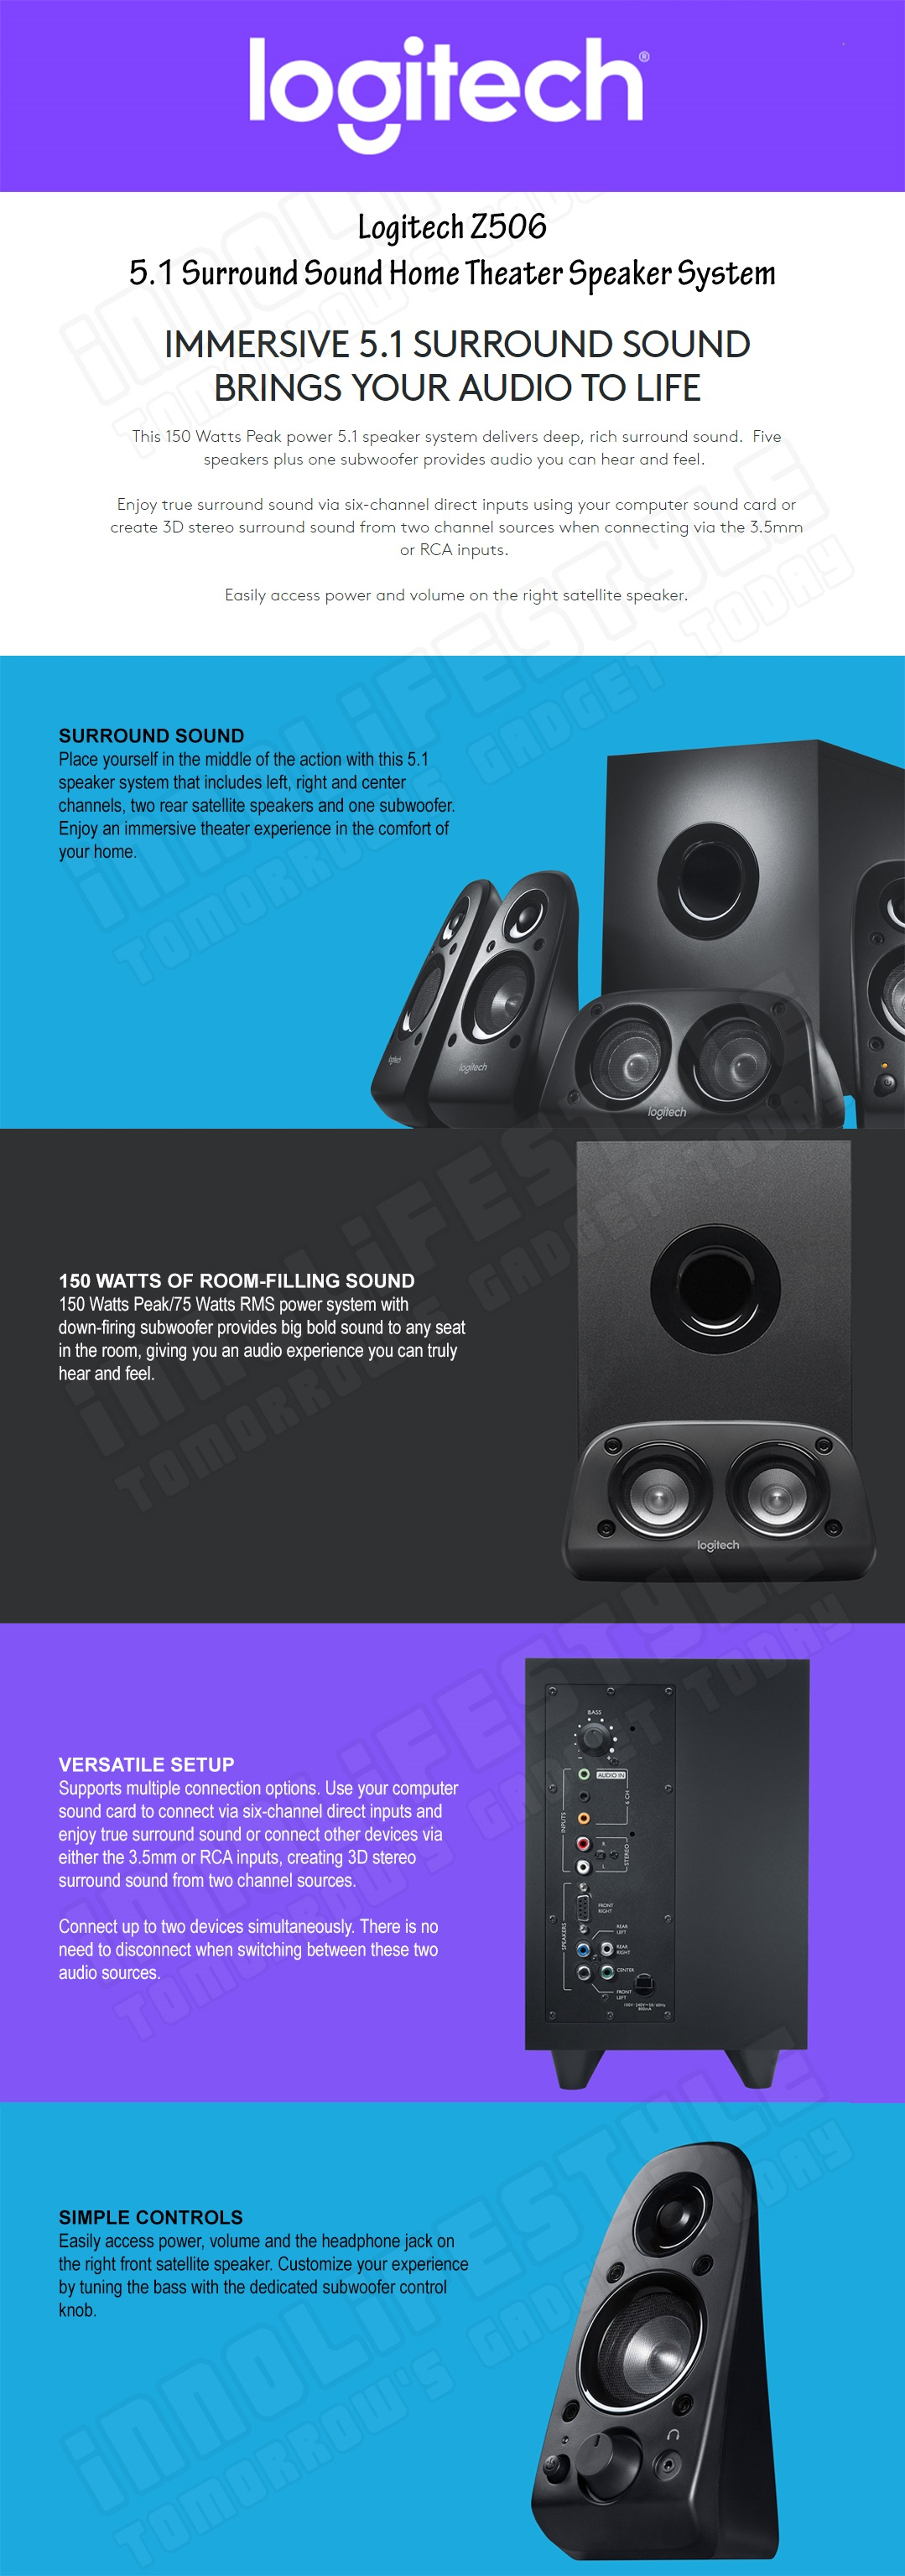 How To Hook Up 5 1 Surround Sound Speakers - Round Designs